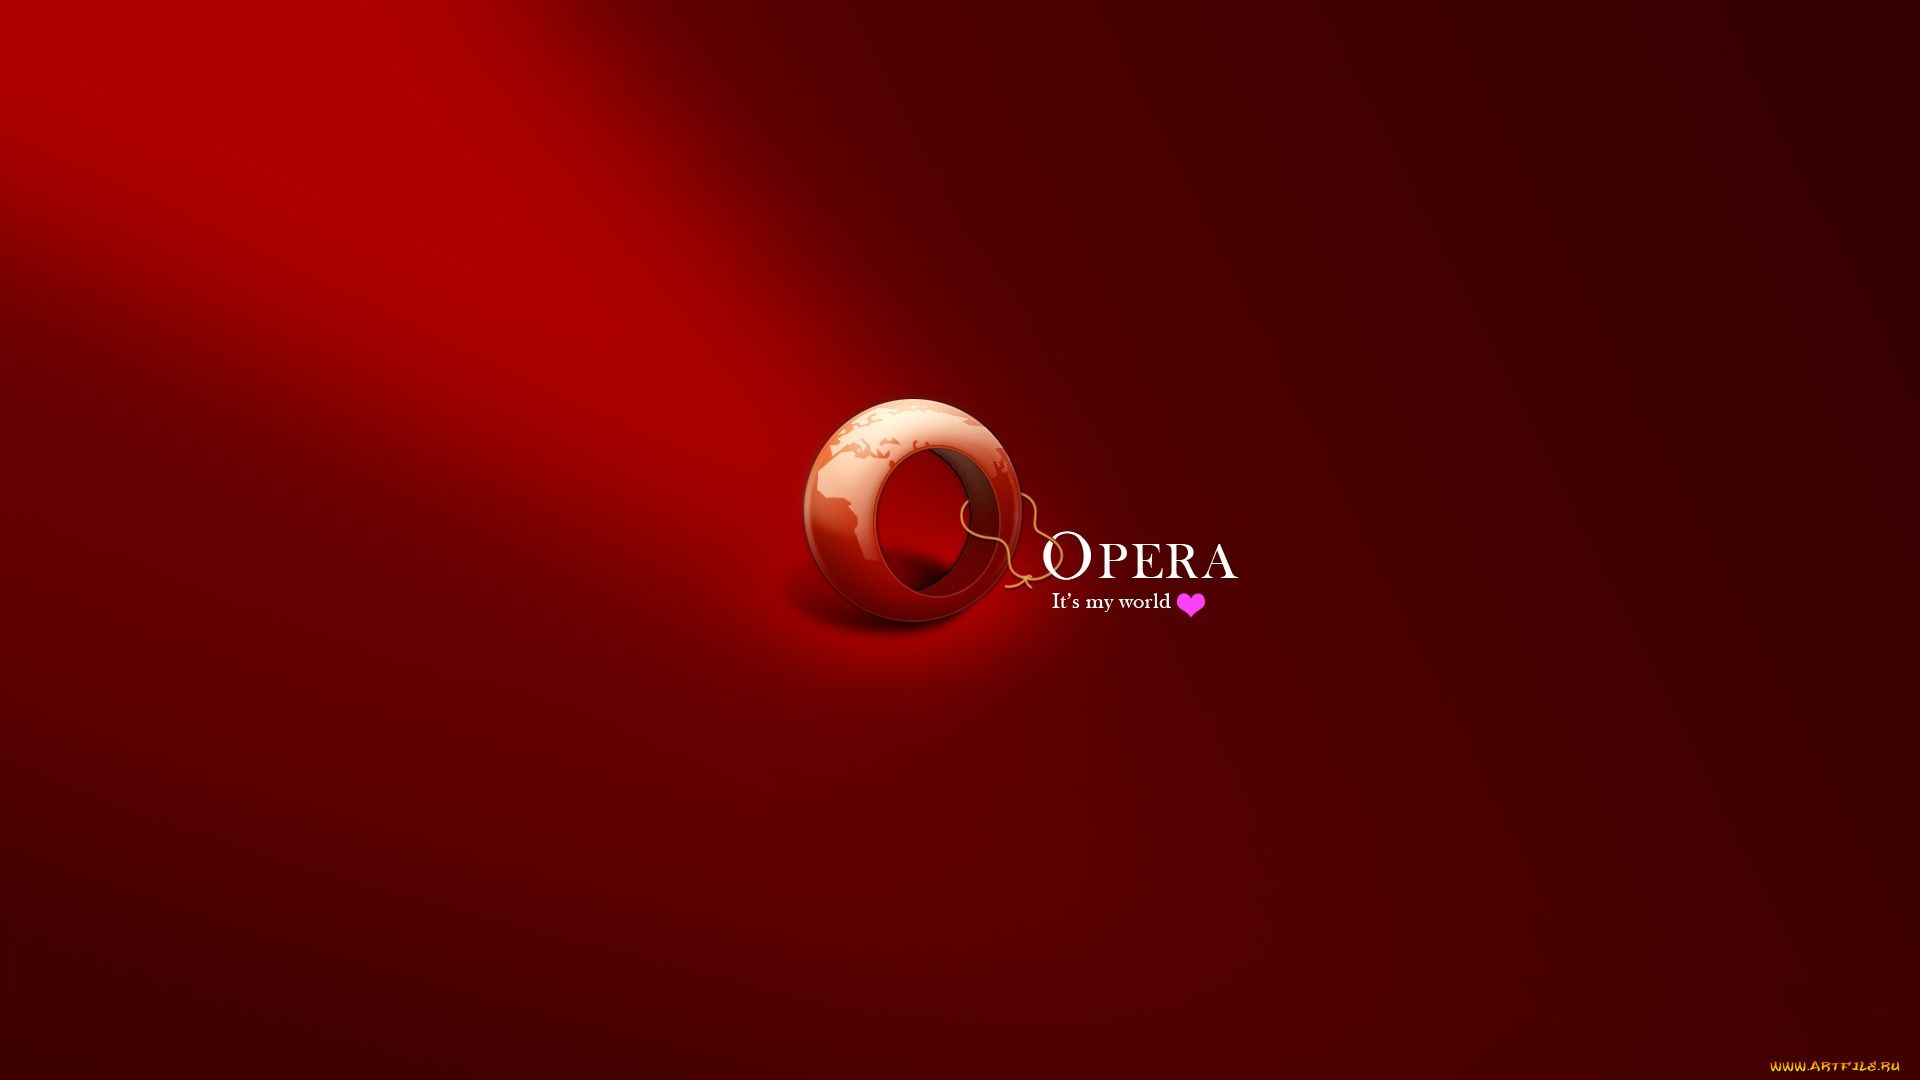 Opera full hd wallpaper